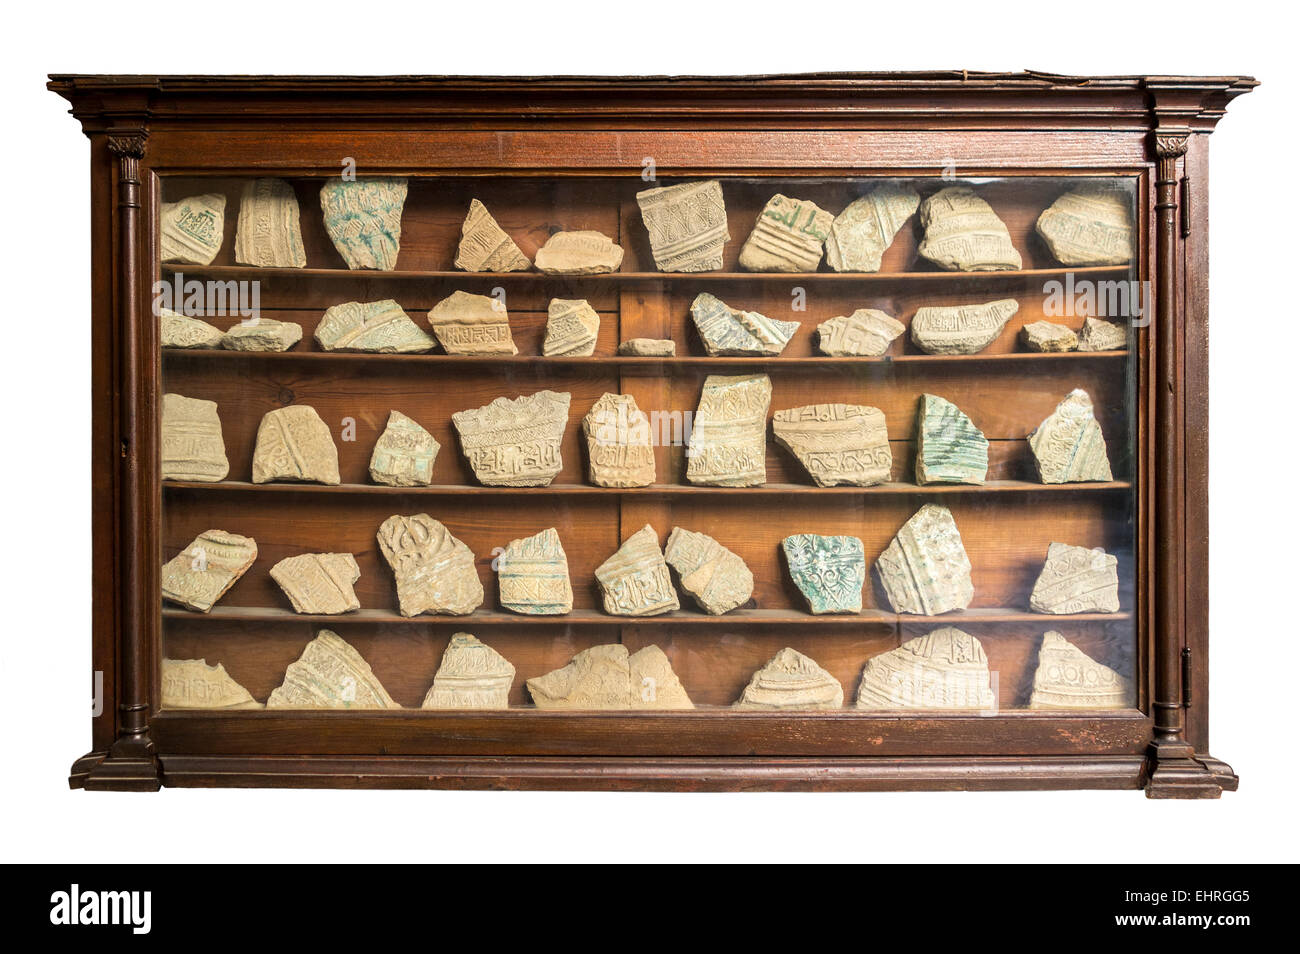 Boring museum display bhz. Old museum showcase cabinet from the 1920's with collection of archeological finds; - Stock Image